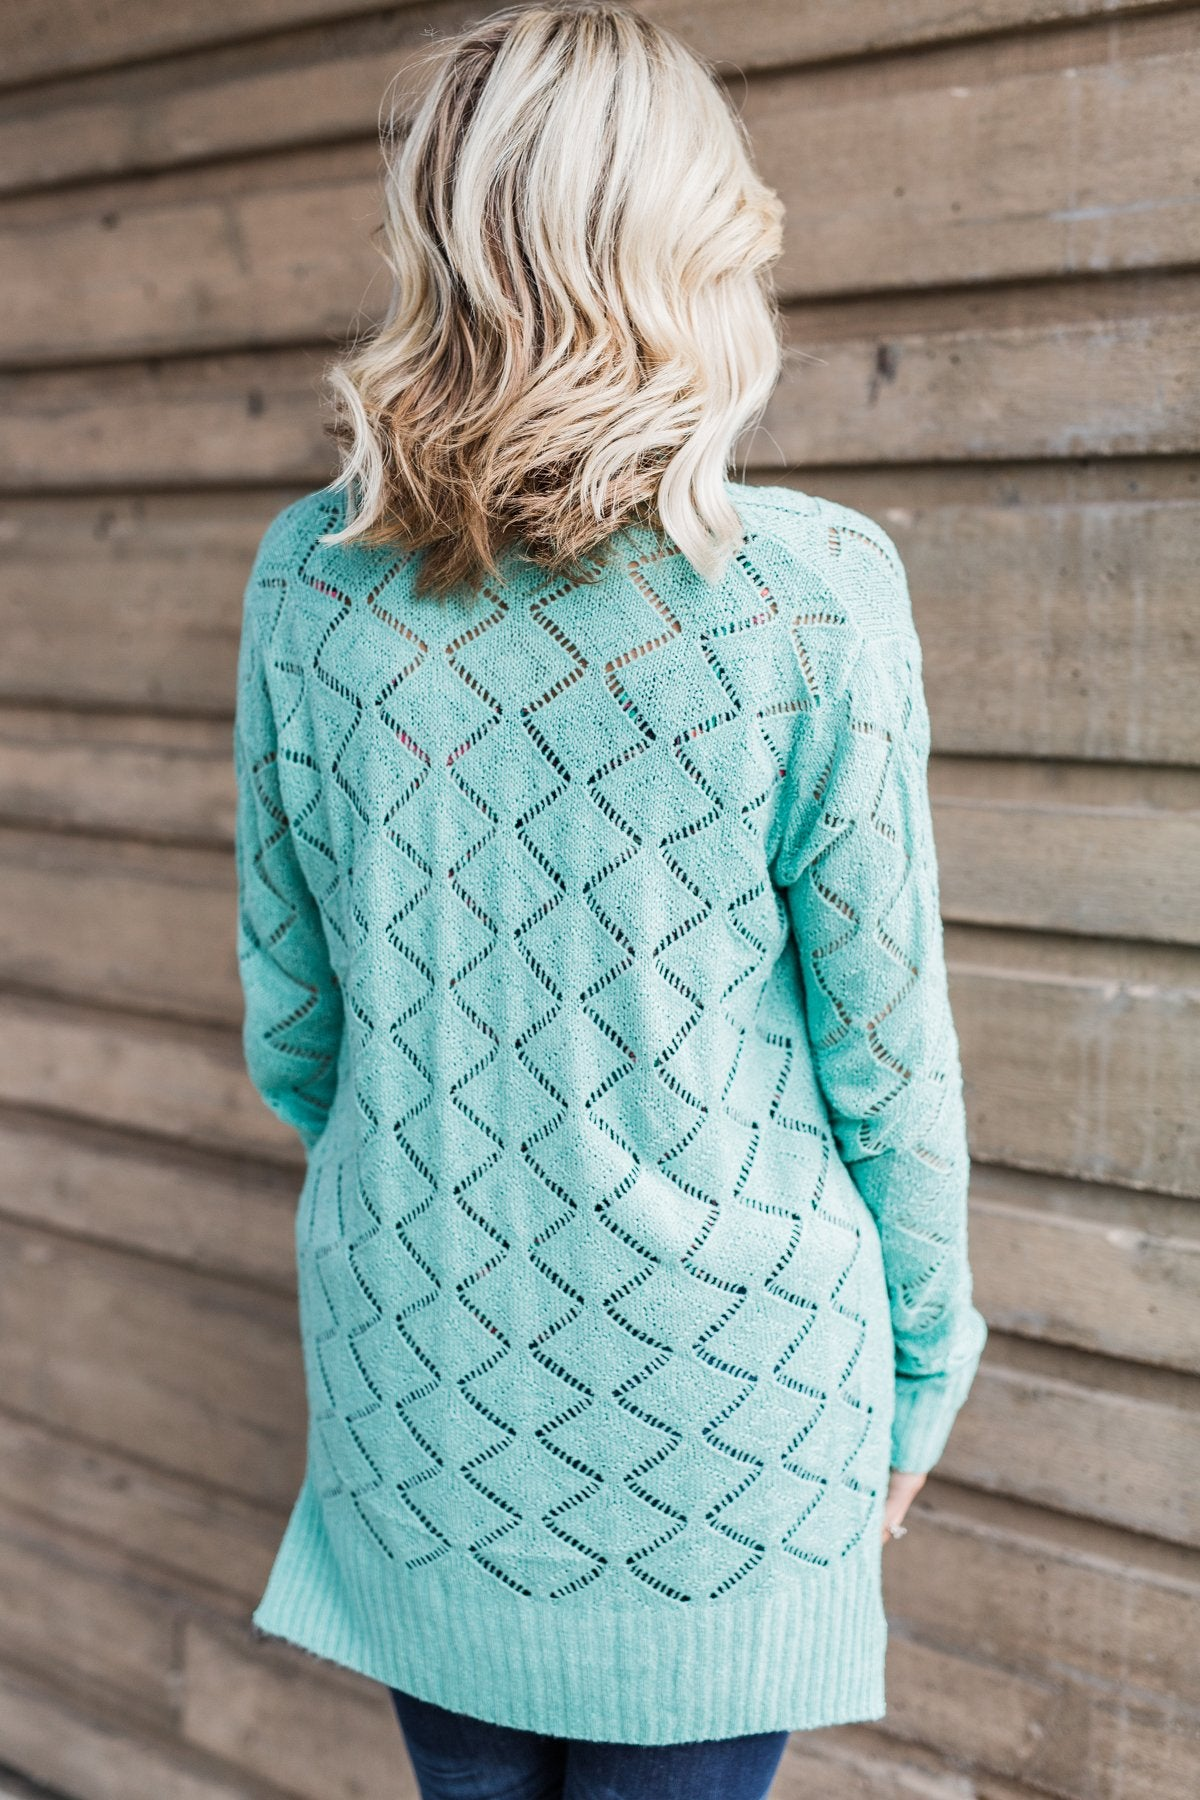 Knit Pointelle Cardigan - Teal